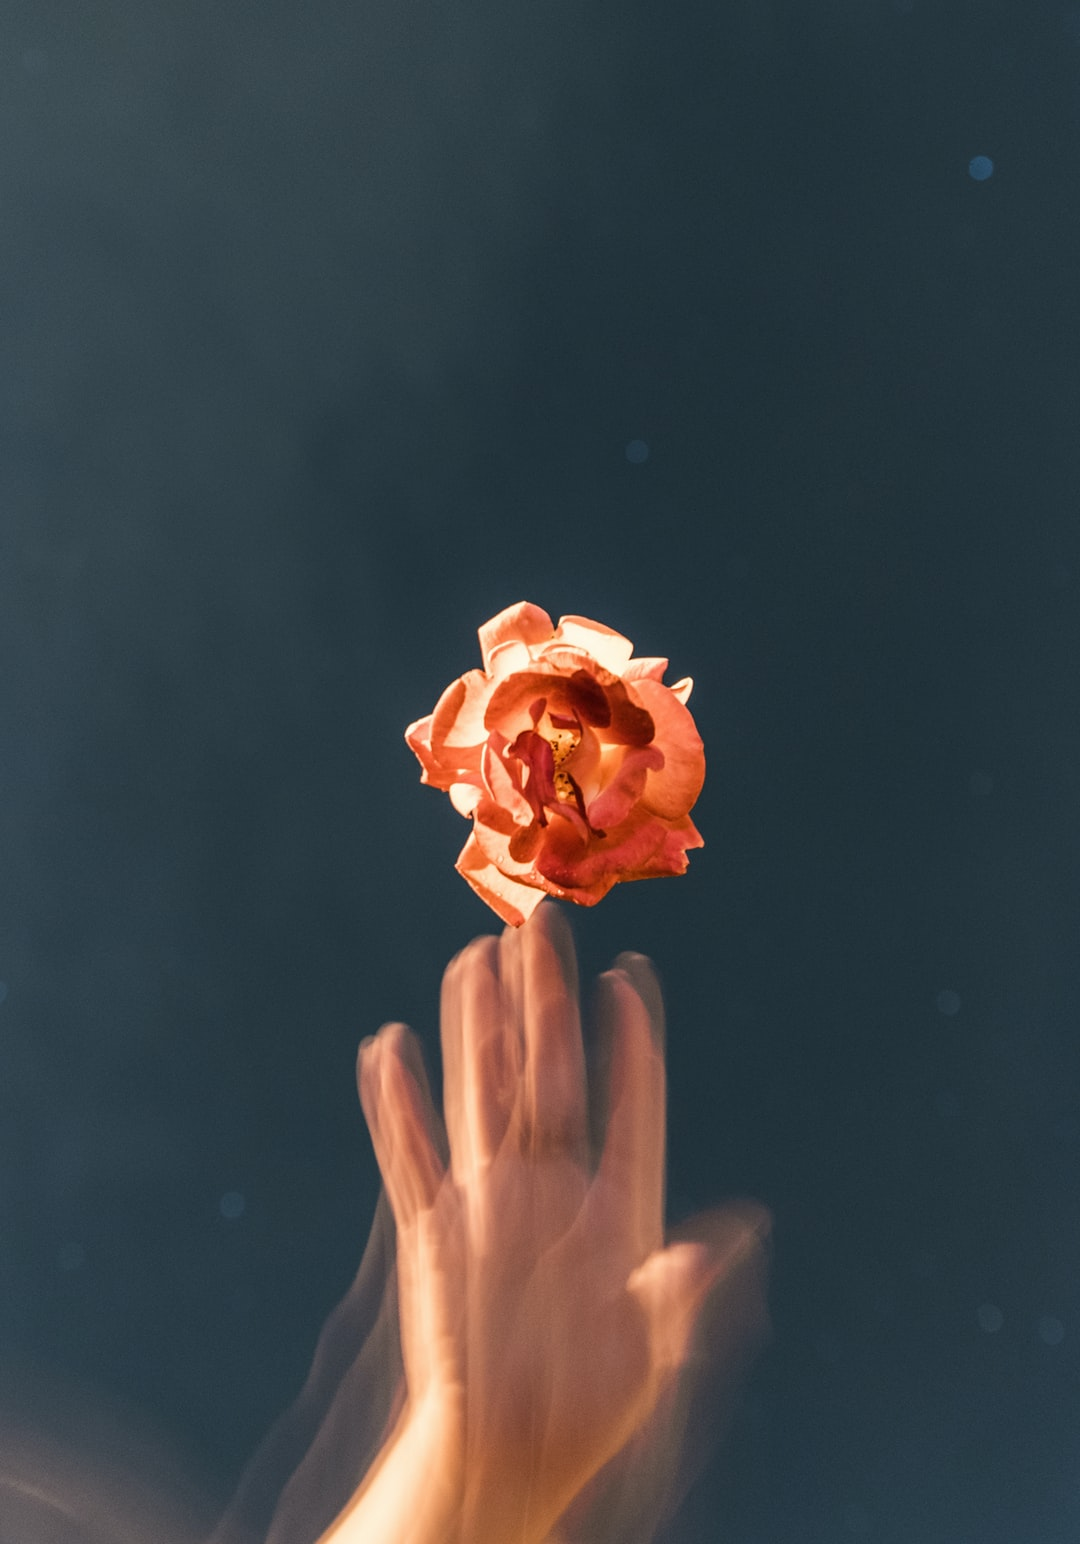 Taken at night with a slow shutter speed, the flower was floating stationary overhead on some clear thread while my hand created the motion blur.